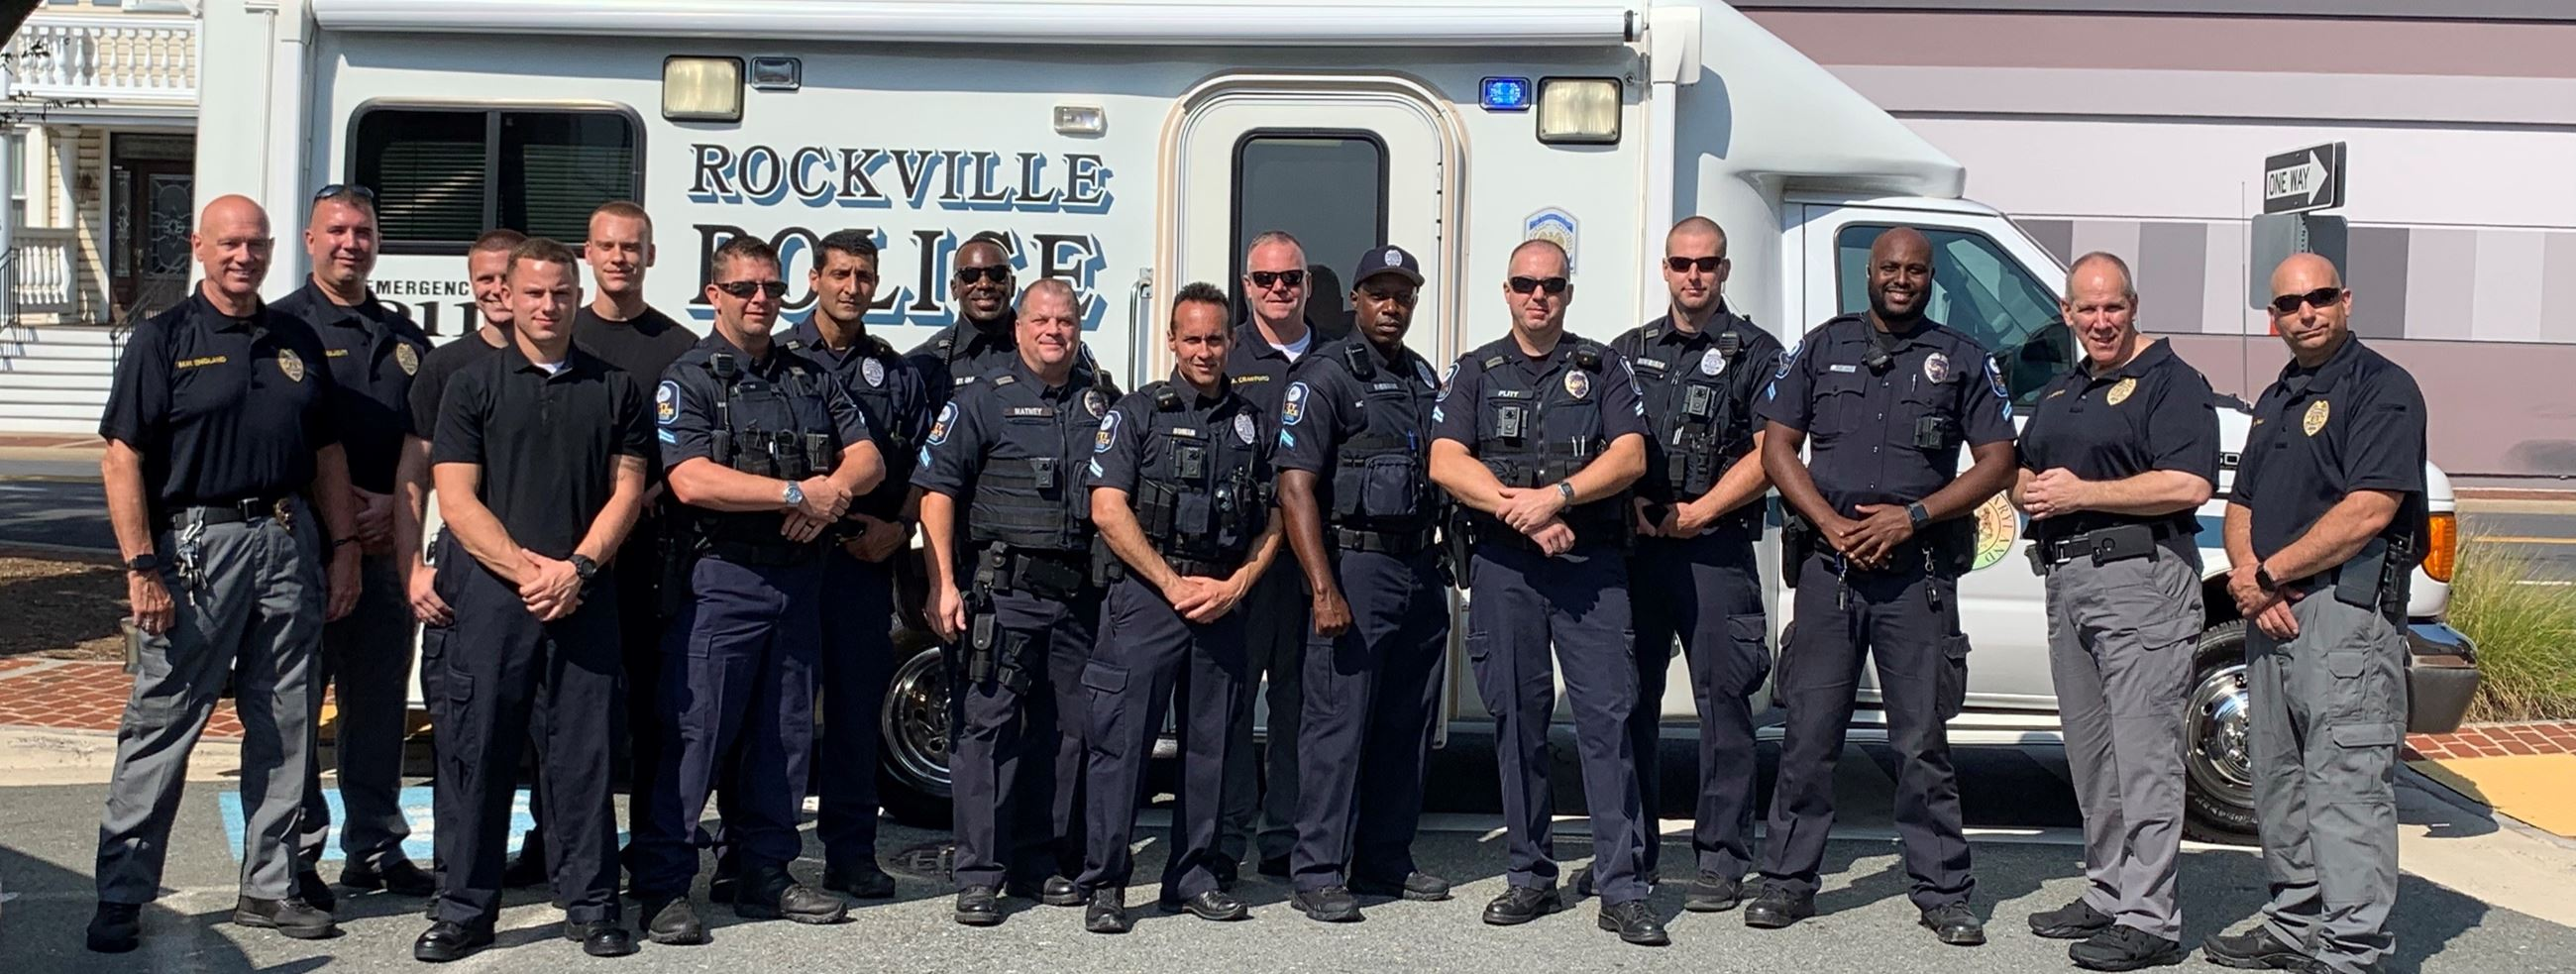 Rockville Police Officers